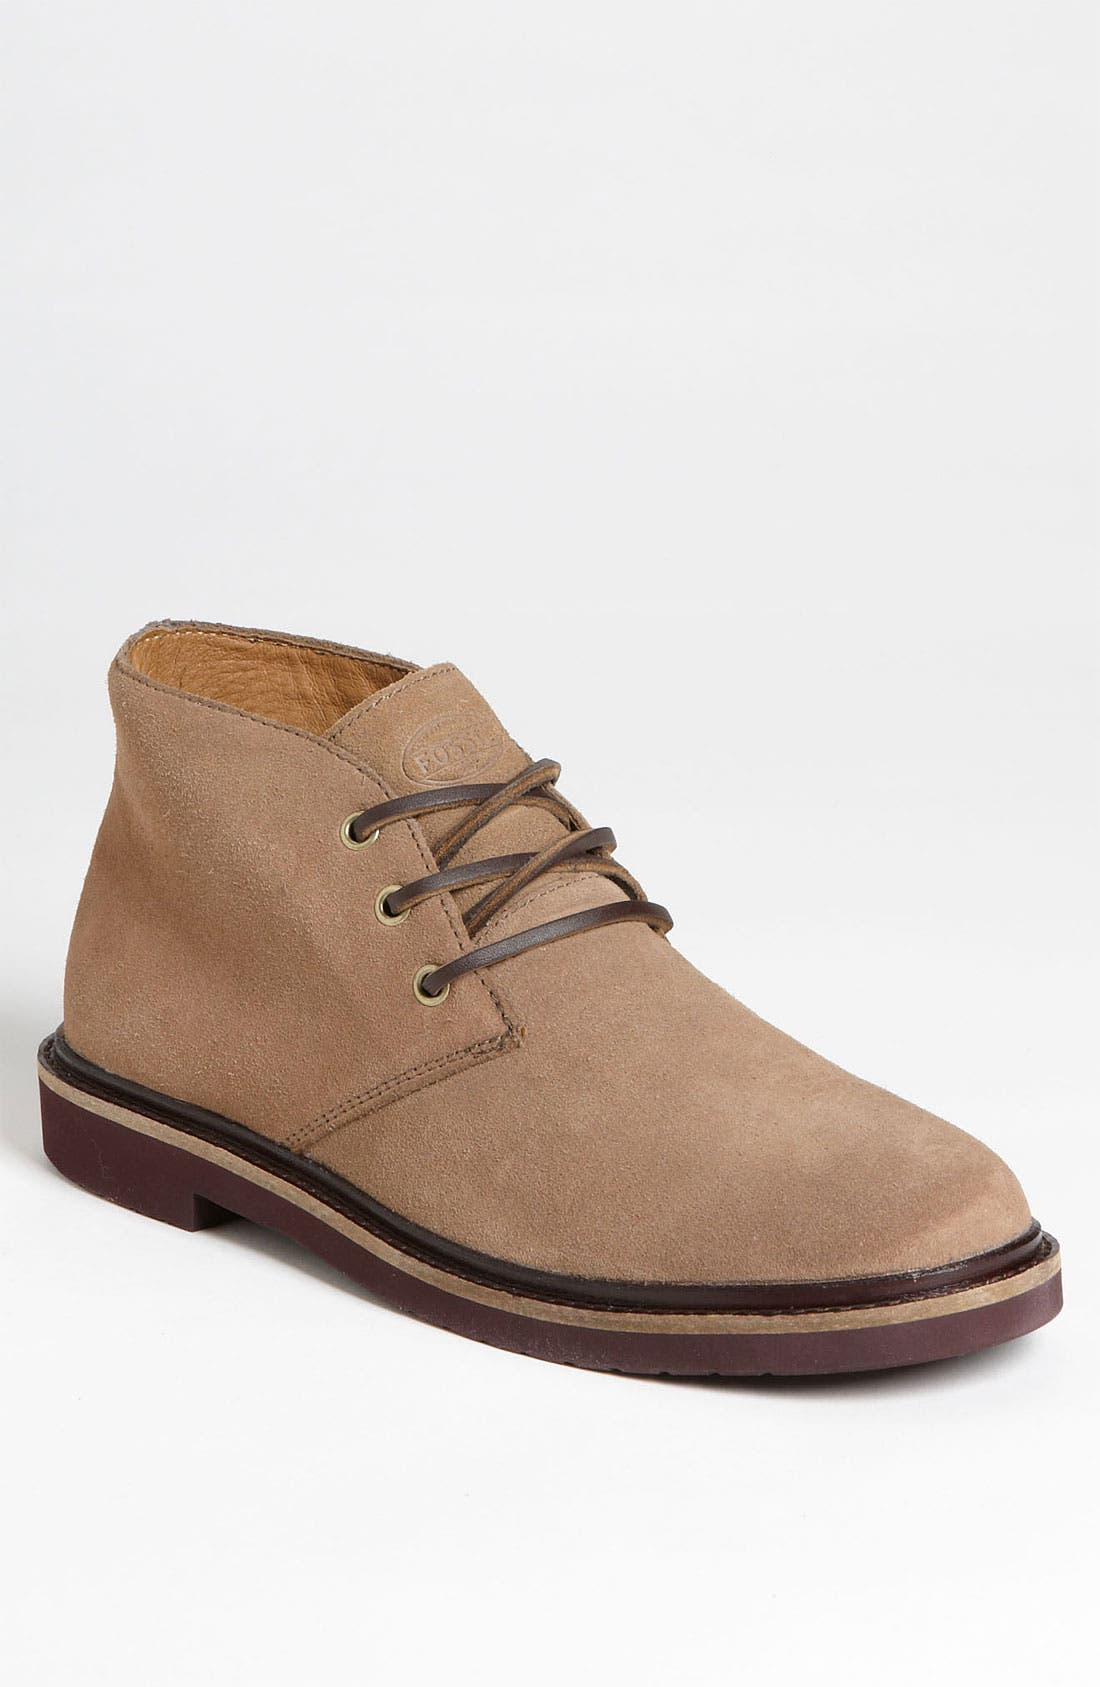 Alternate Image 1 Selected - Fossil 'Winston' Chukka Boot